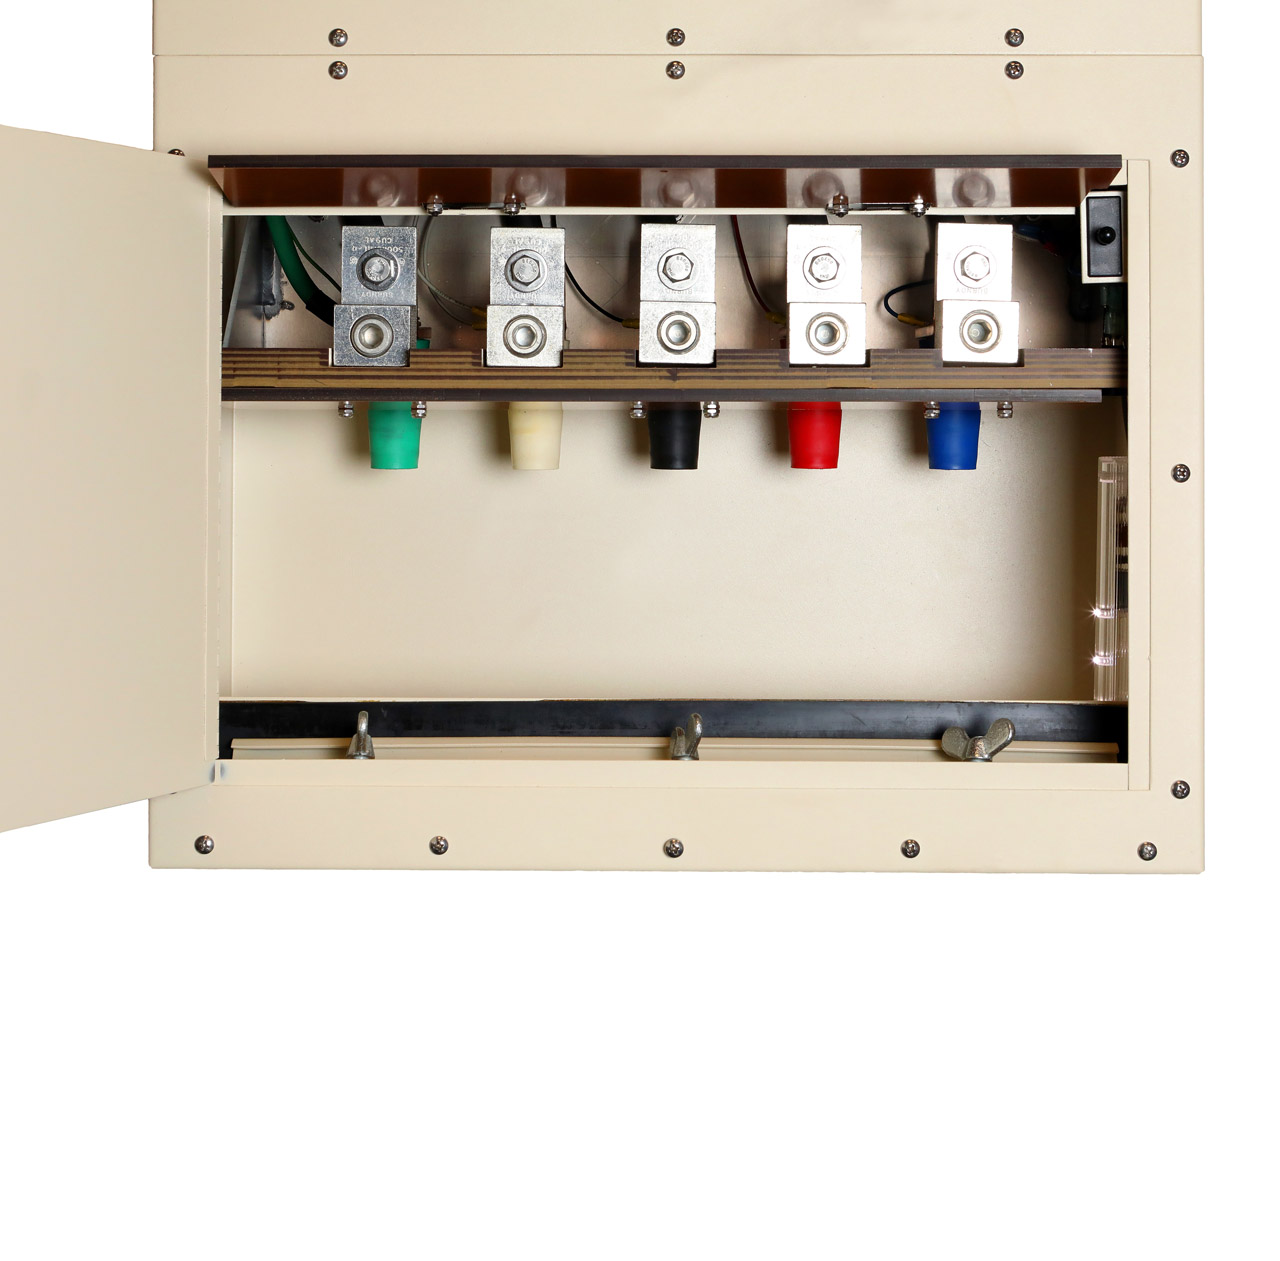 400 Amp Company Switch with 16 Series Cams and Lugs, Indoor Use